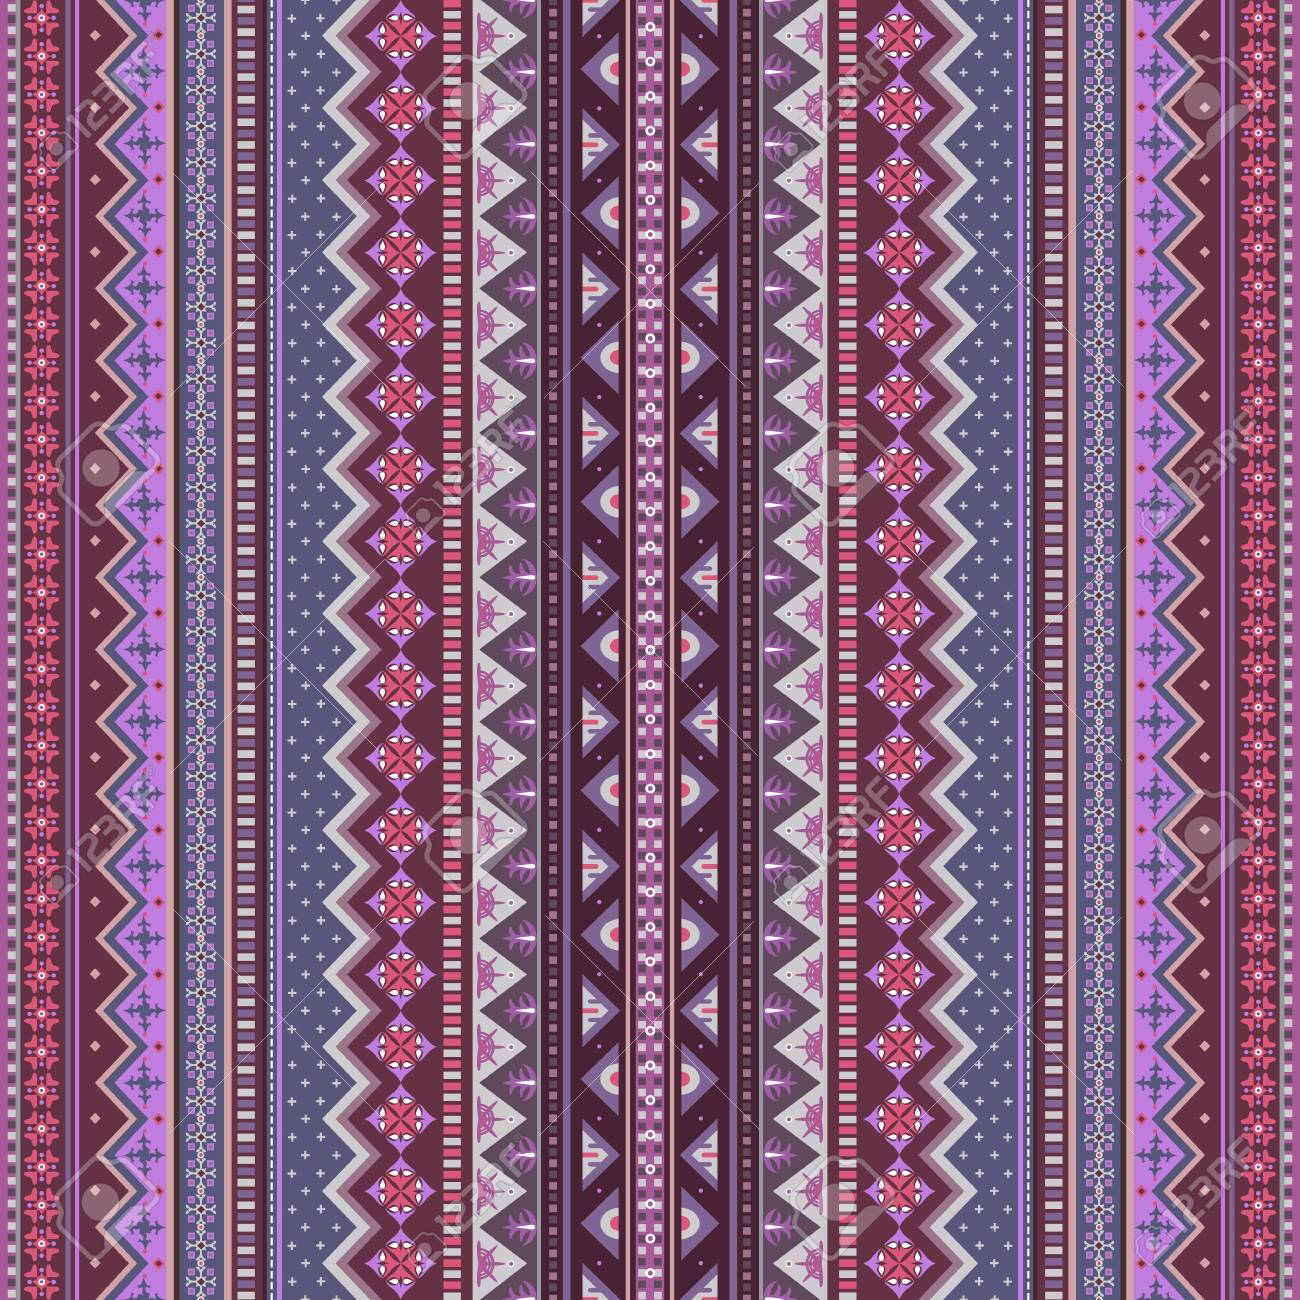 Abstract ethnic stripe pattern, vector background - 151771118